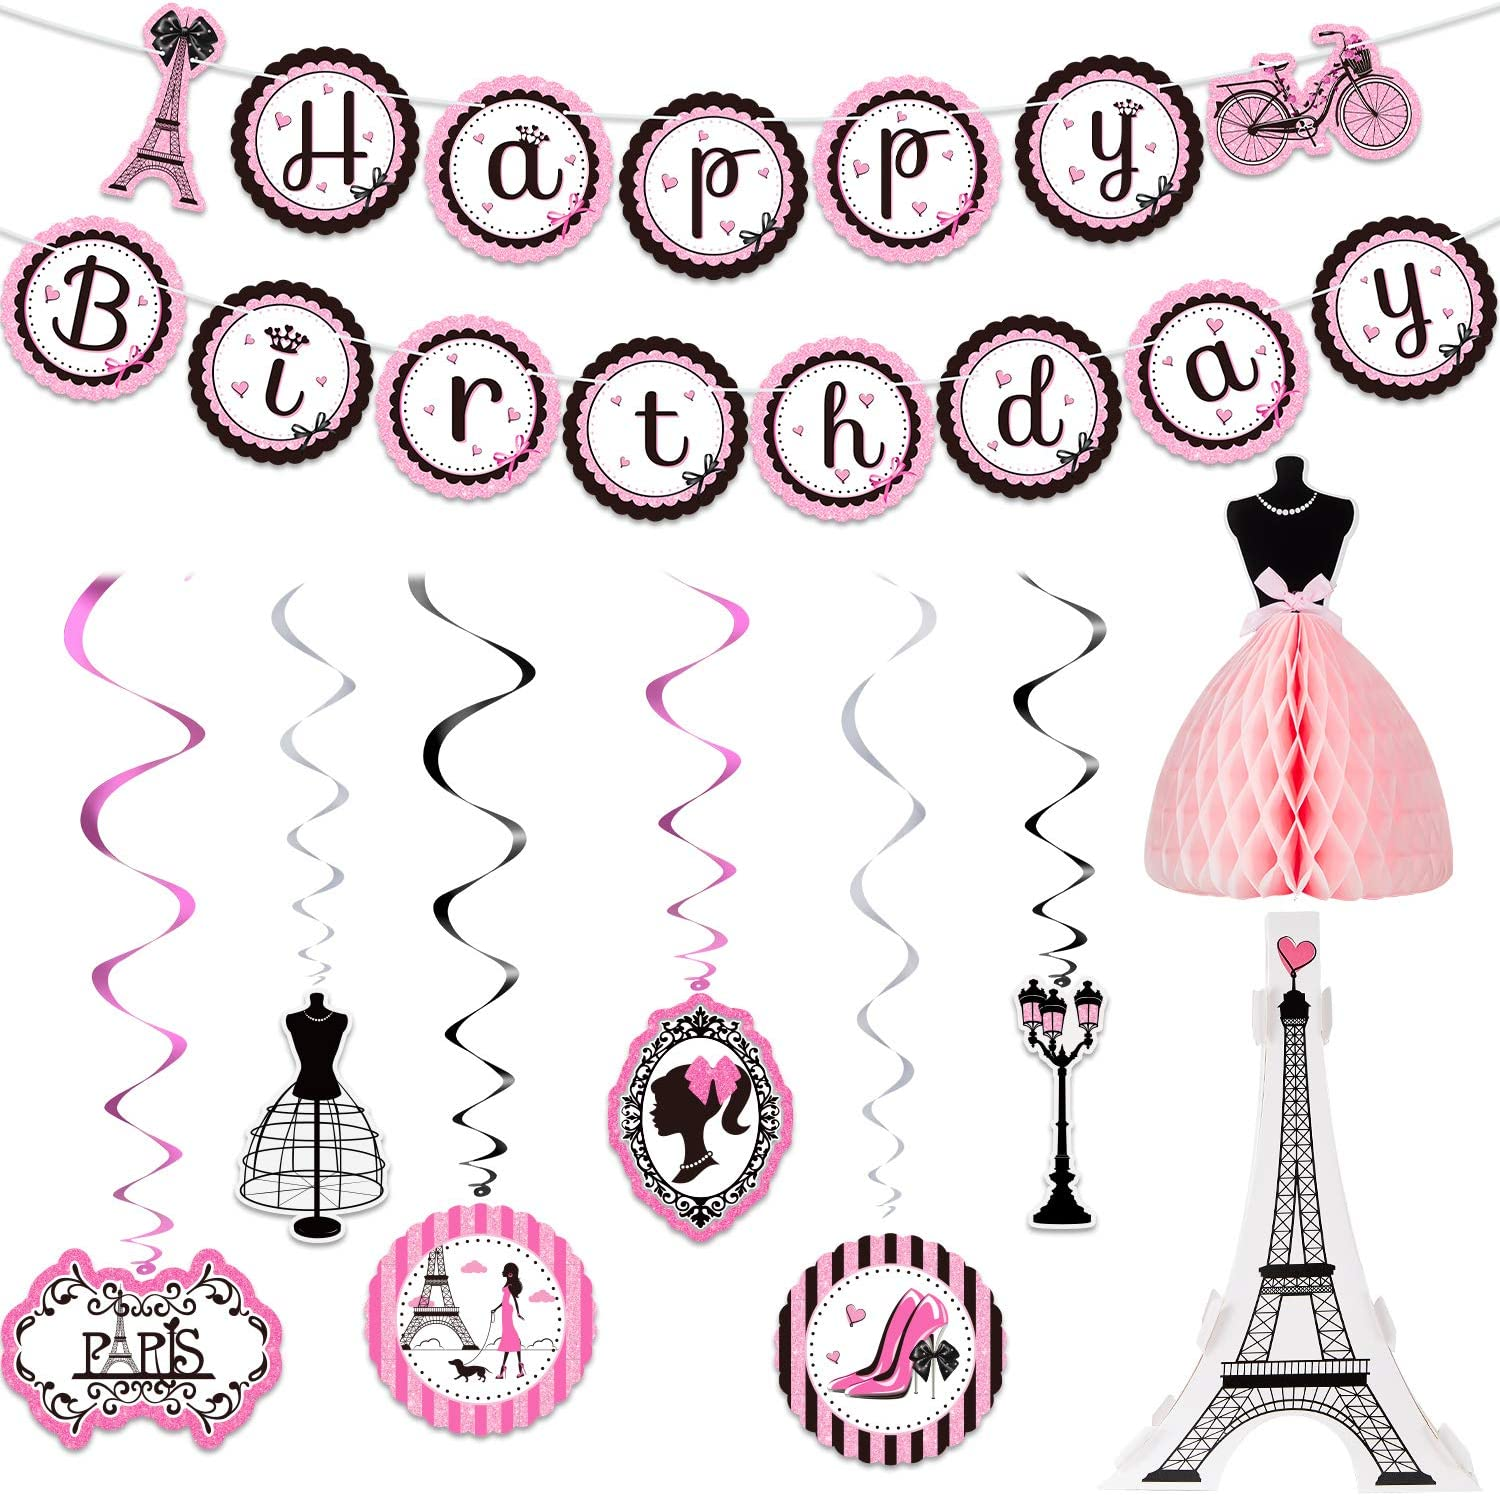 Paris Party Decorations Set, Paris Happy Birthday Banner Dress Honeycomb Centerpiece Eiffel Tower Cutout Paris Hanging Swirl Decoration for Baby Shower Birthday Paris Theme Party Supplies